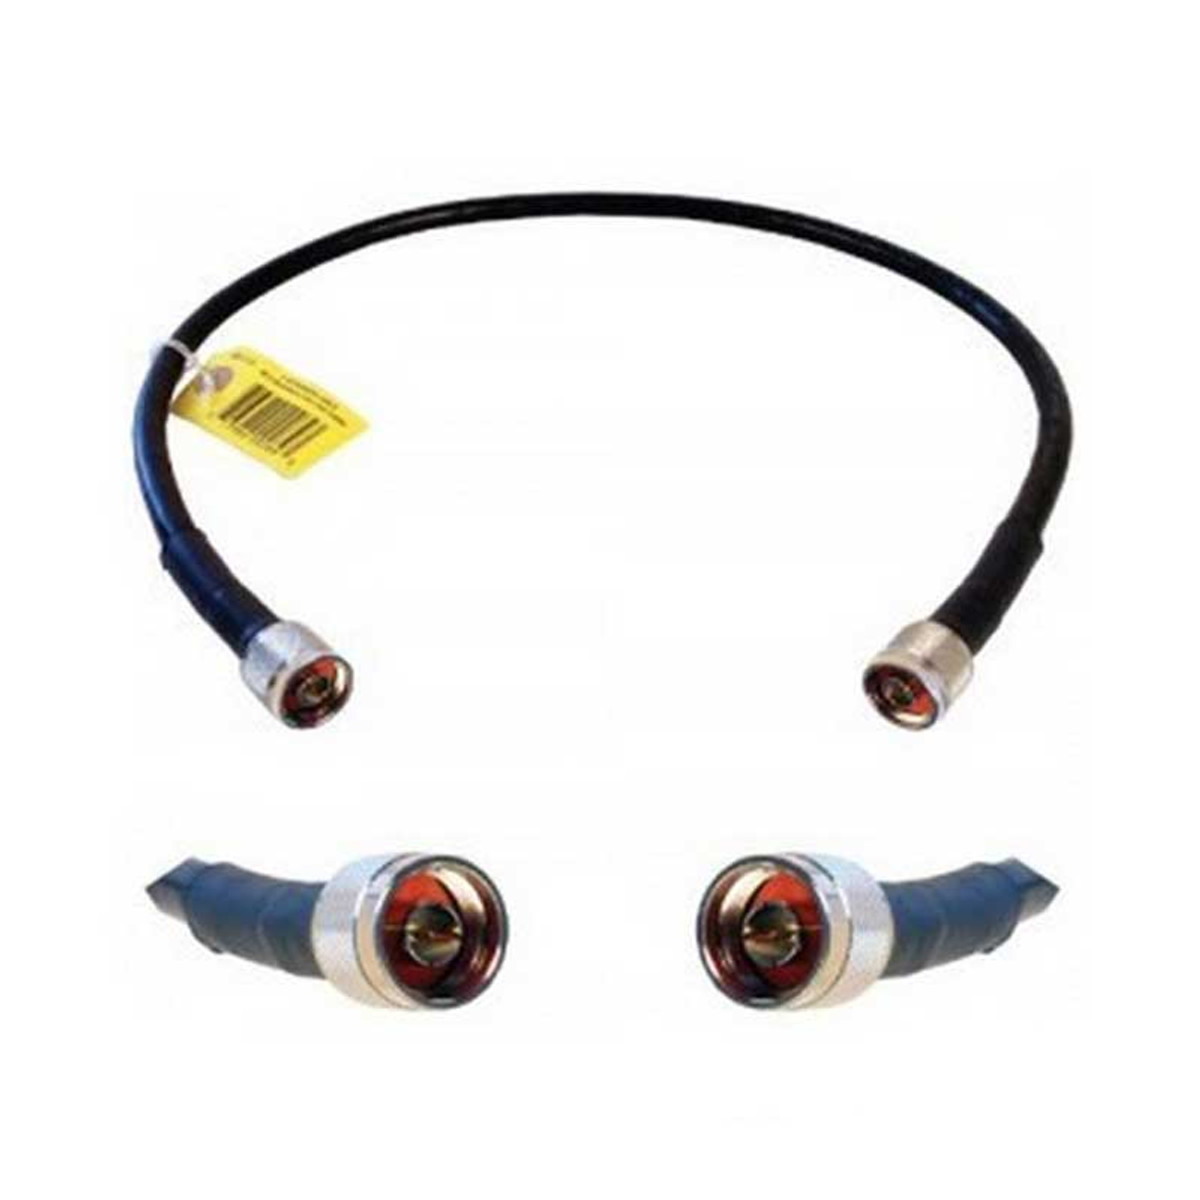 Wilson 951134 2-Foot Extension Cable RG58U Low Loss Foam Coaxial w/ N-Male '''_'ÇÎ⒑'__'''_''_'''_'ÇΝ'''_''_'''_'Ç΂ N-Male Connectors, detail